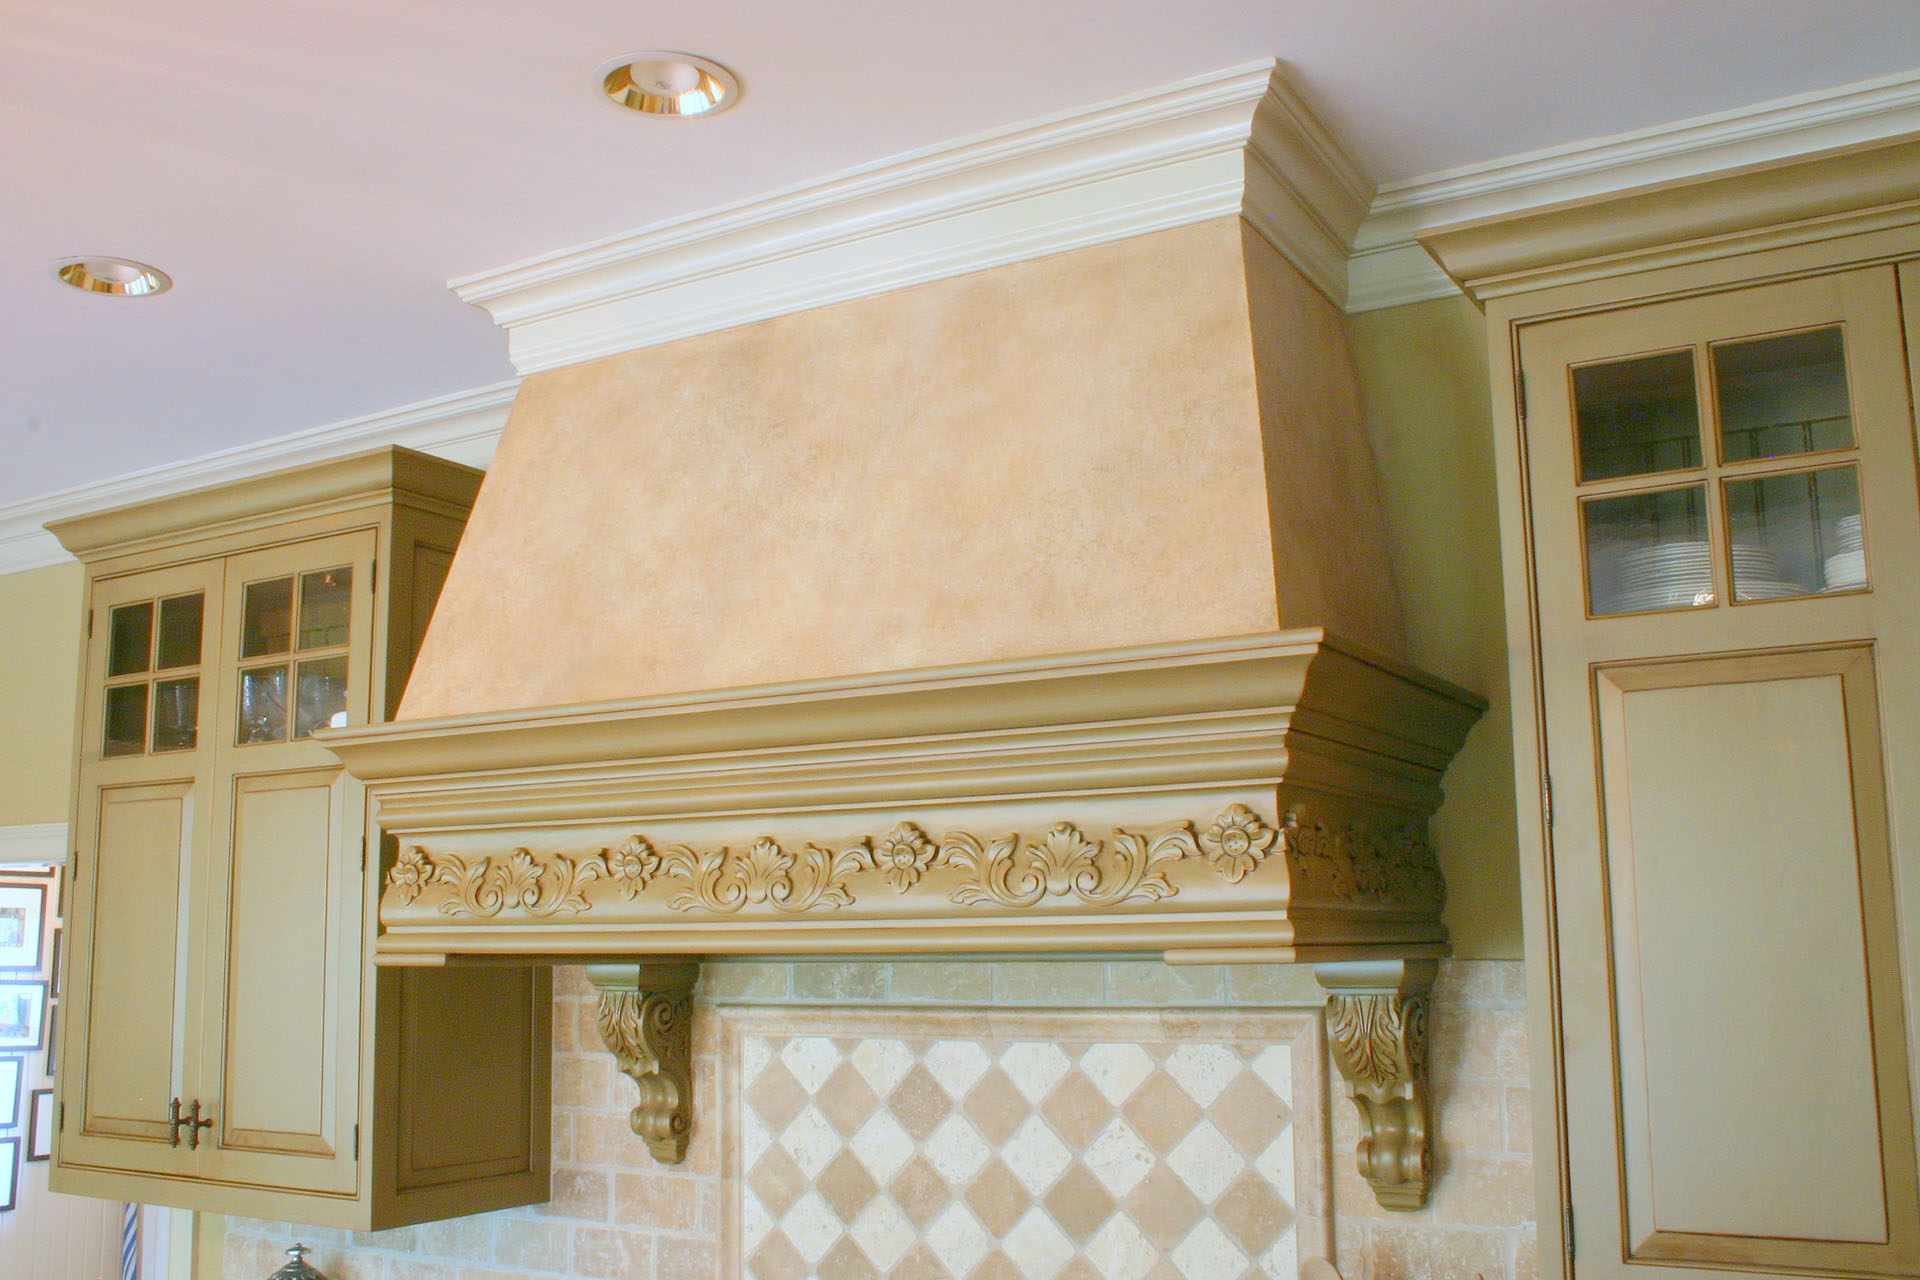 Clay Center Distressed Wood and Stucco Range Hood